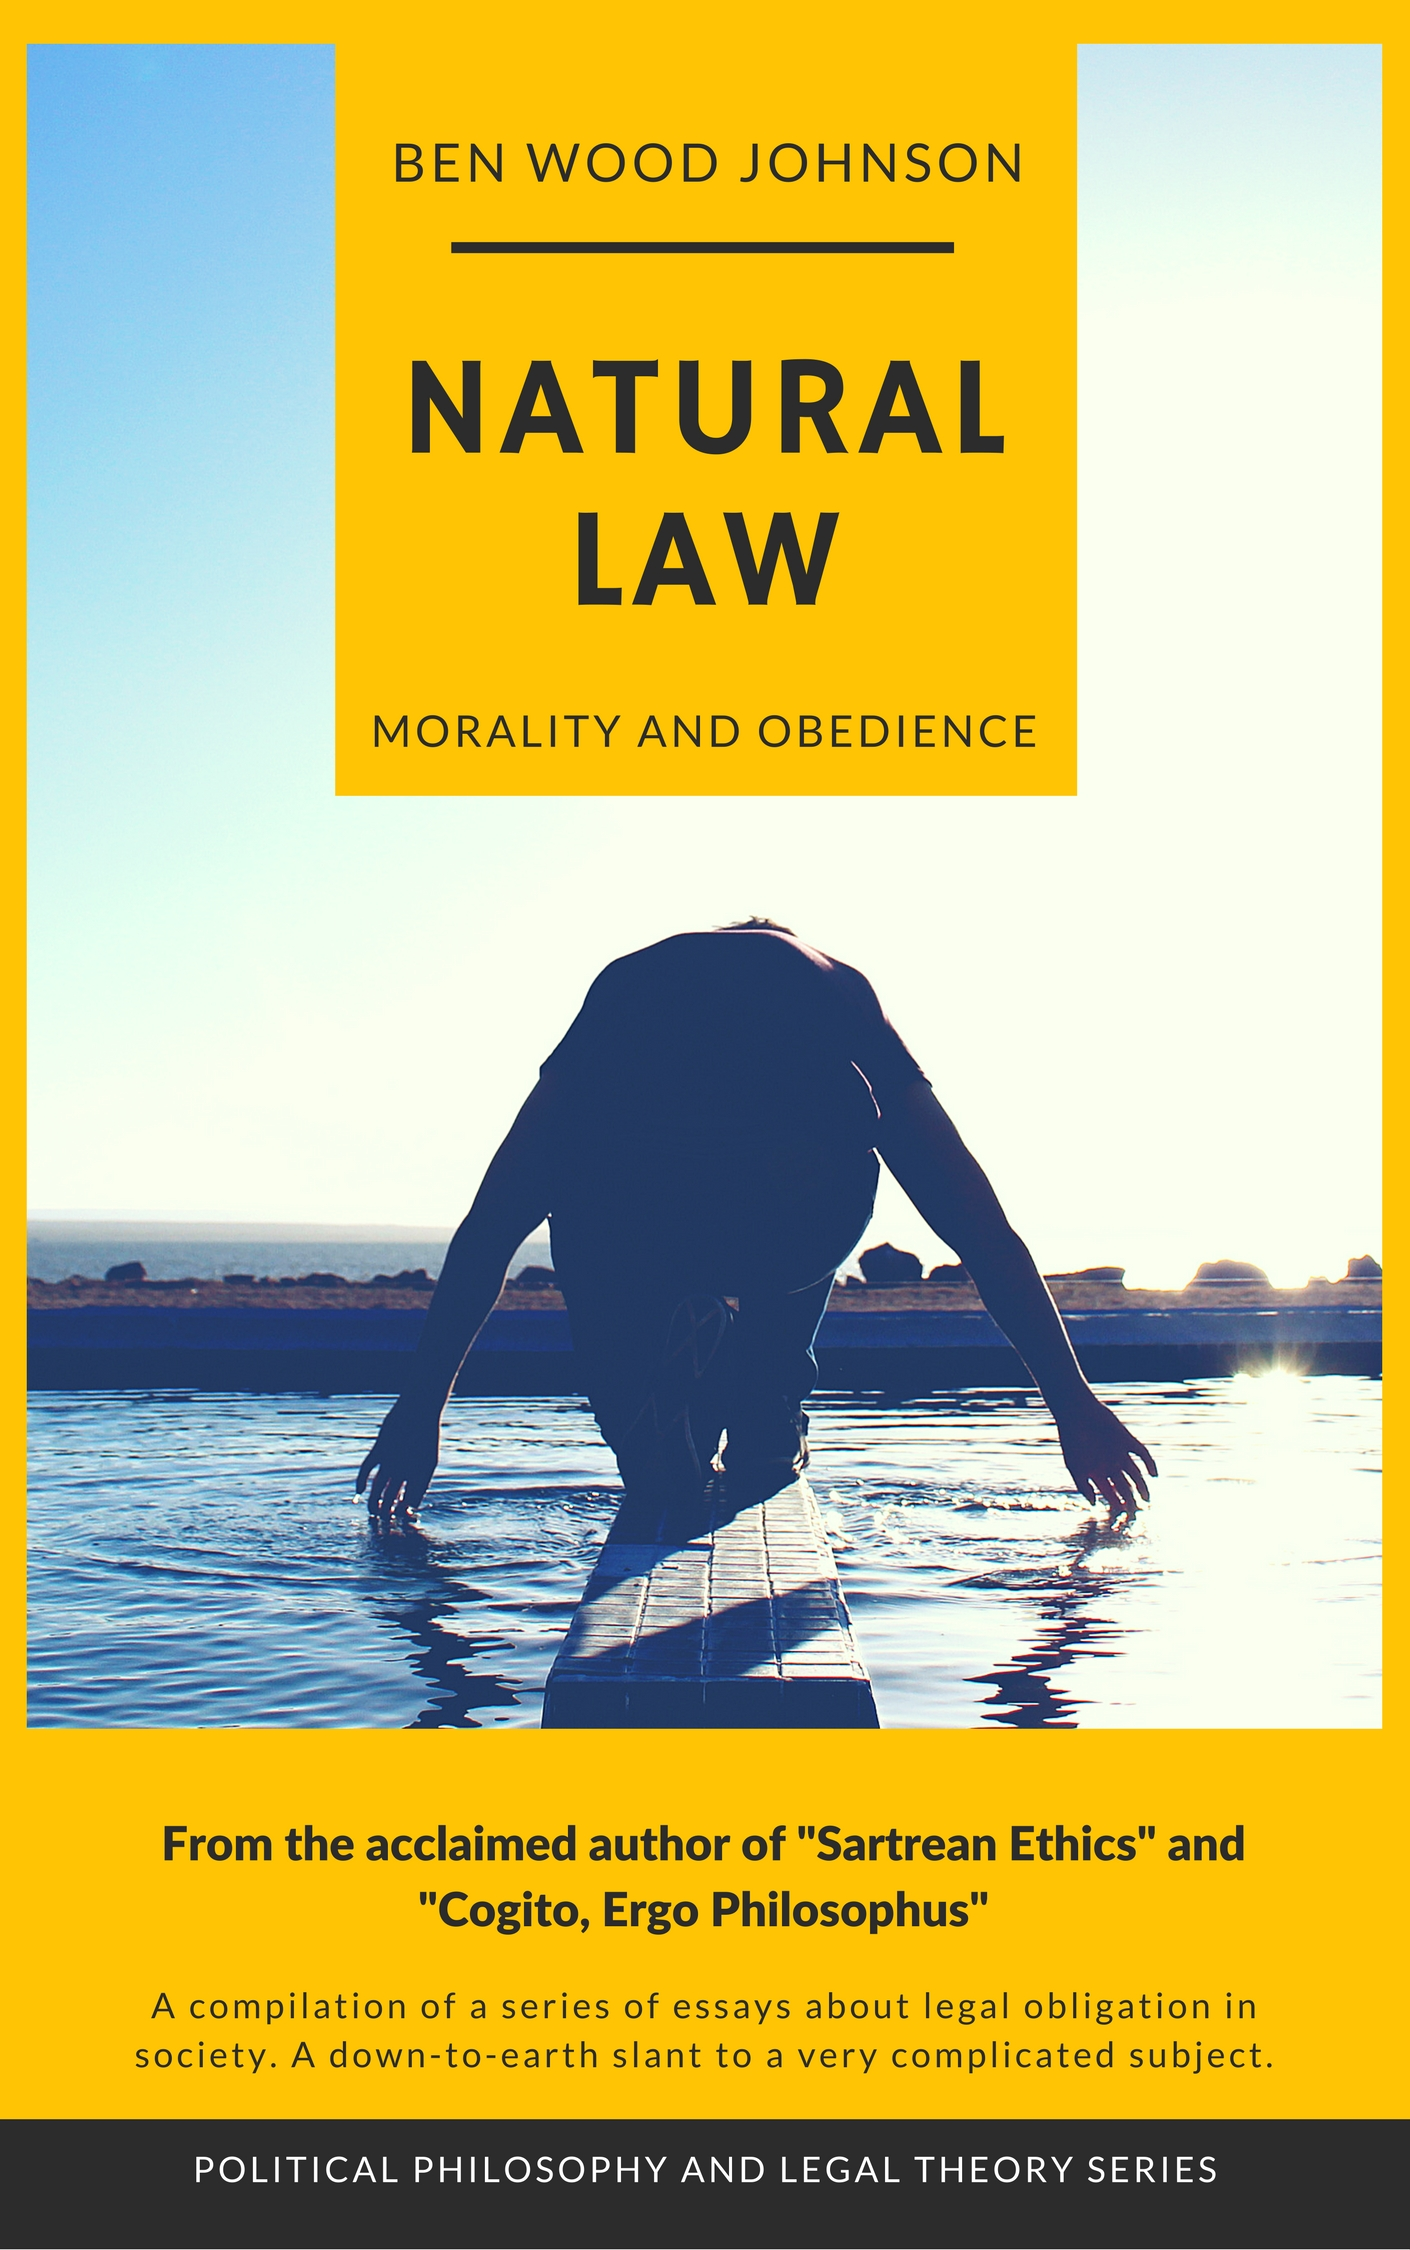 morality vs obedience essay Answer: moralism is commonly defined as the practice of morality, as distinct from religion a non-religious person, who nonetheless lives by a personal moral code, can be said to hold to moralism another, more negative definition of moralism is an undue emphasis on morality in this.